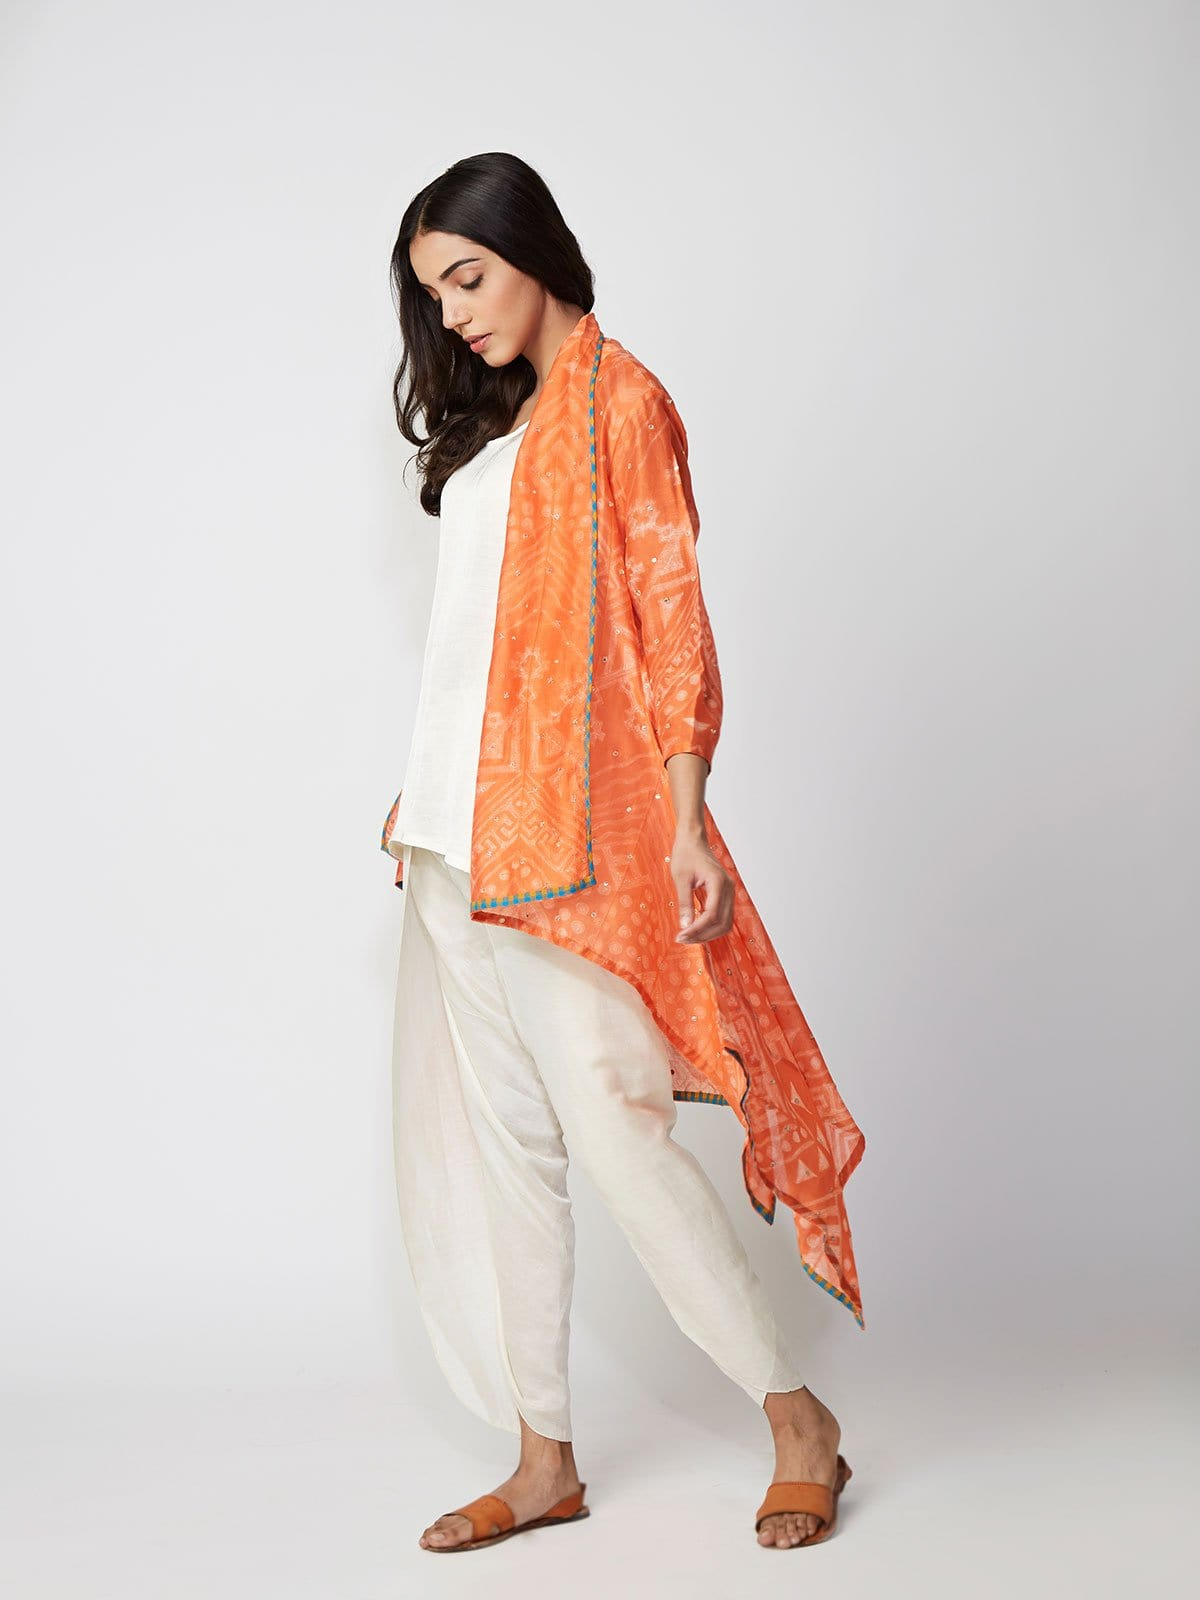 jackets, capes, dhoti pants, contemporary indianwear, modern, summerstyle, shibori, made in jaipur, swativijaivargie